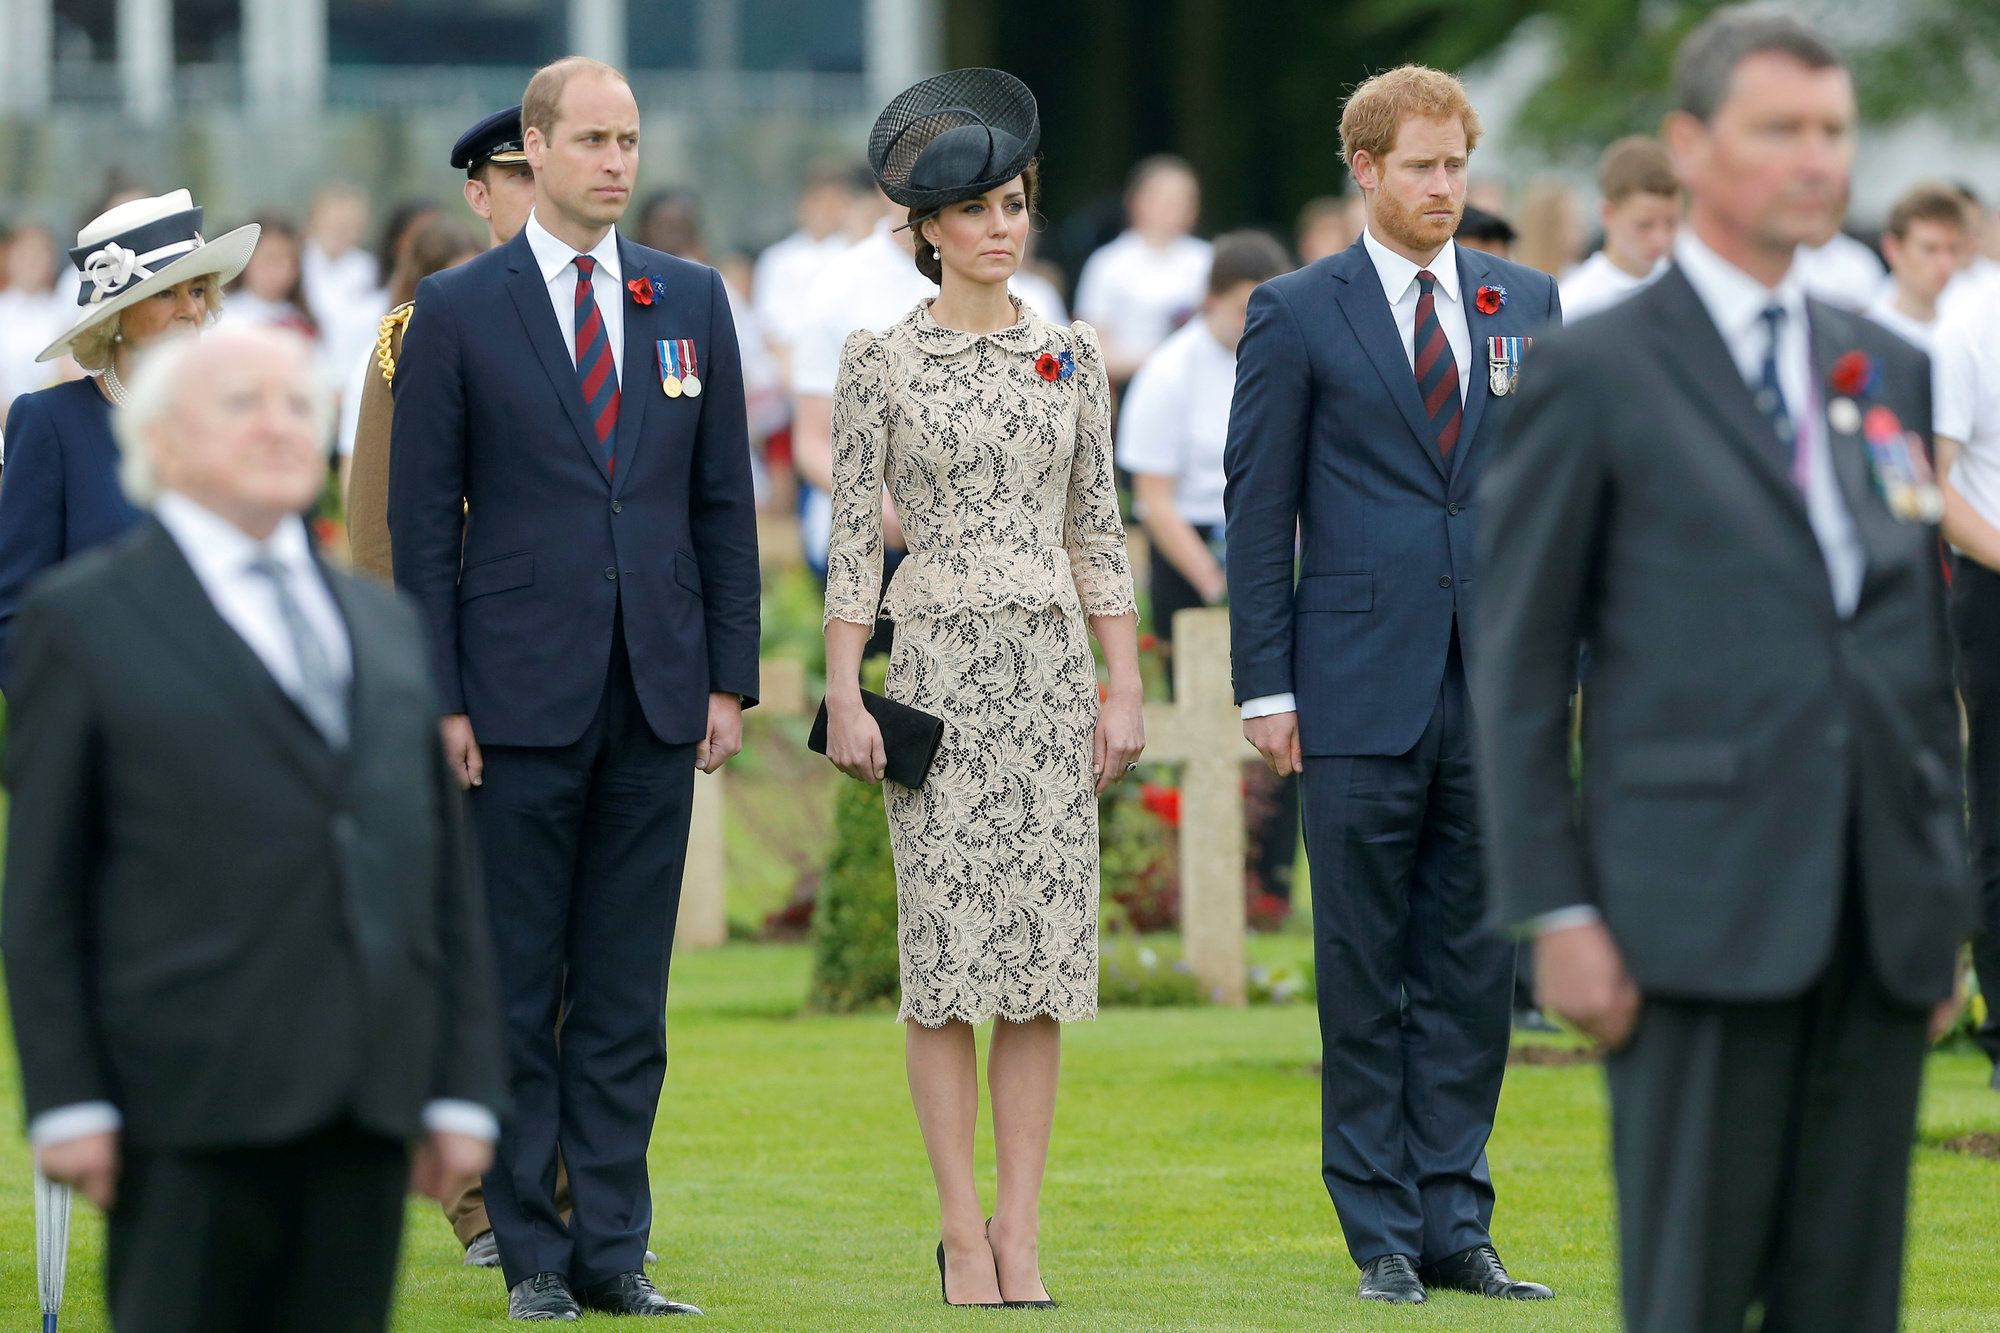 http://www.revelist.com/style-news/kate-middleton-july-2016/3878/We begin with a solemn occasion: a service in France marking the 100th anniversary of the Battle of the Somme./1/#/1